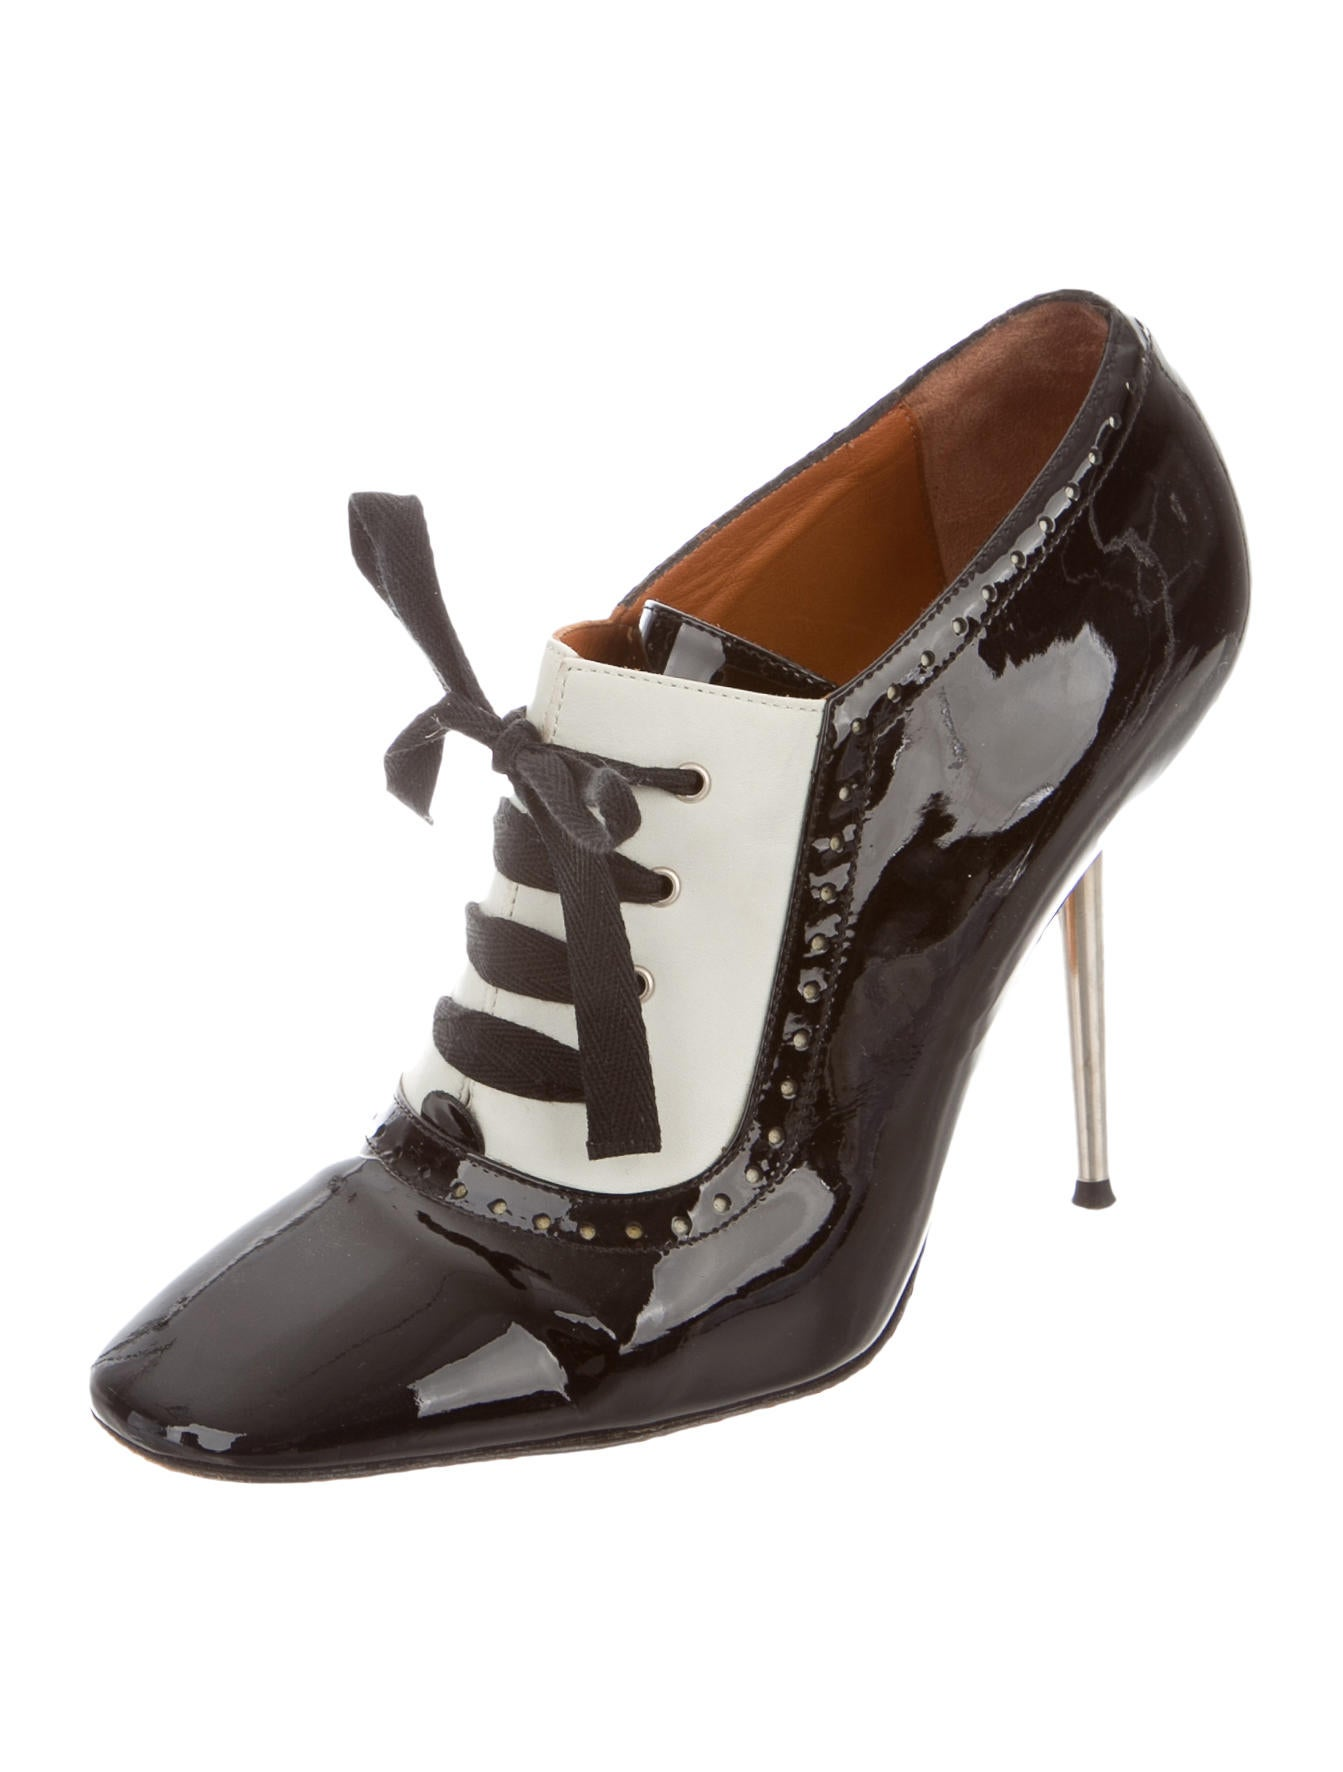 lanvin patent leather lace up booties shoes lan46248